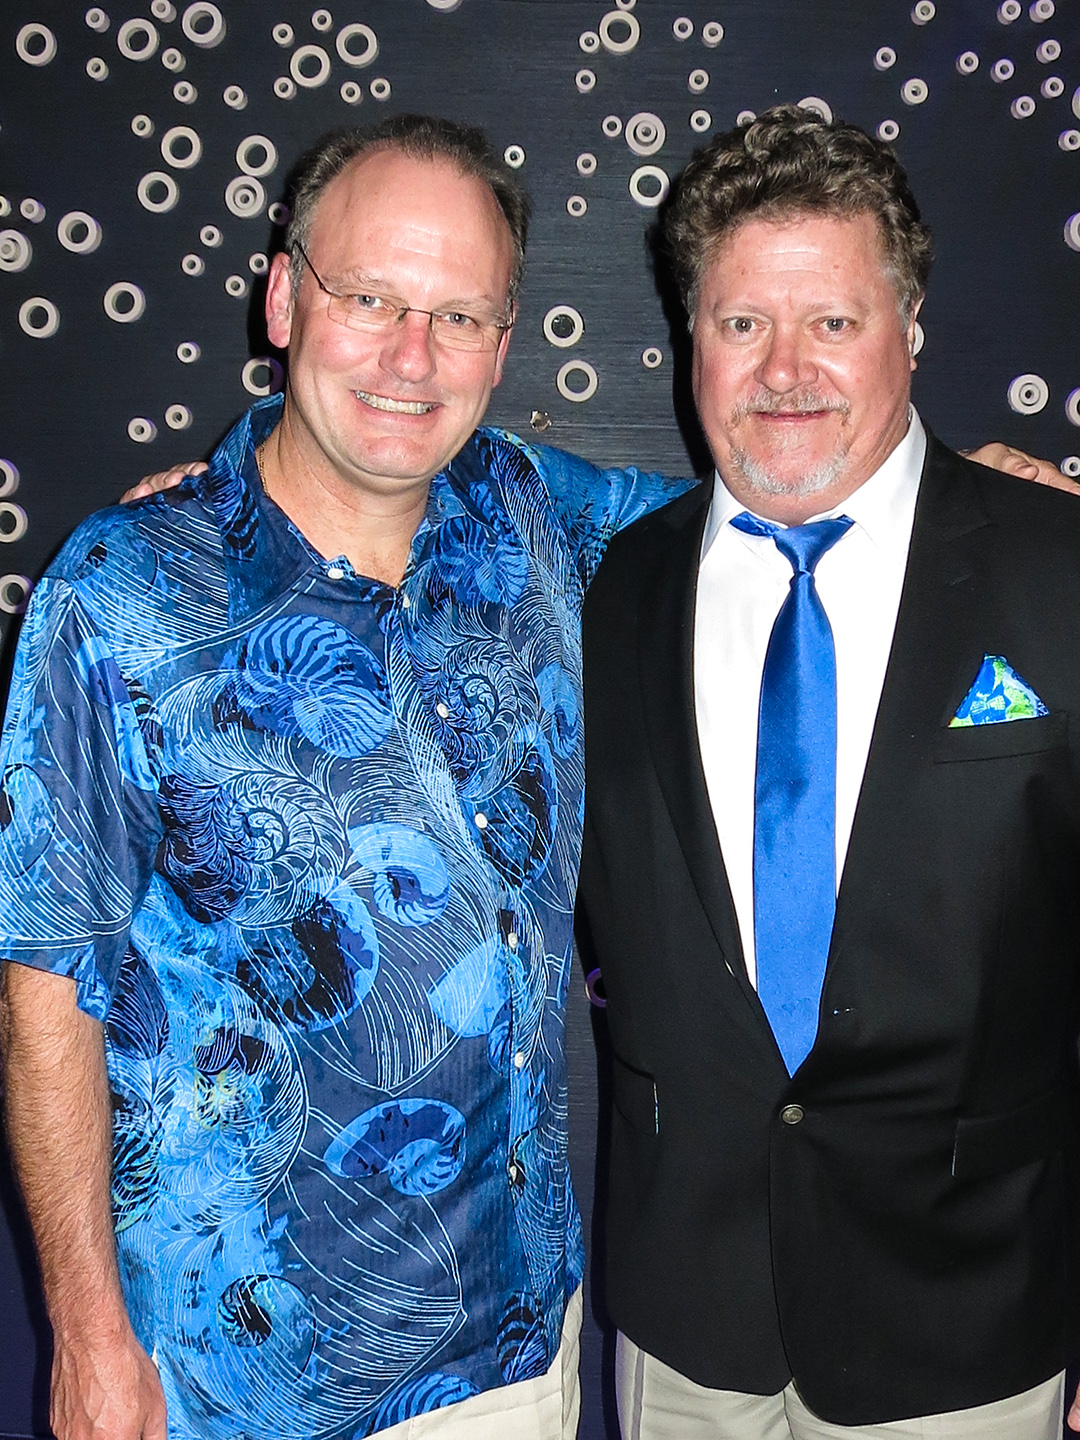 Jim Bowers and Jeff East in Las Vegas, October 21, 2014.